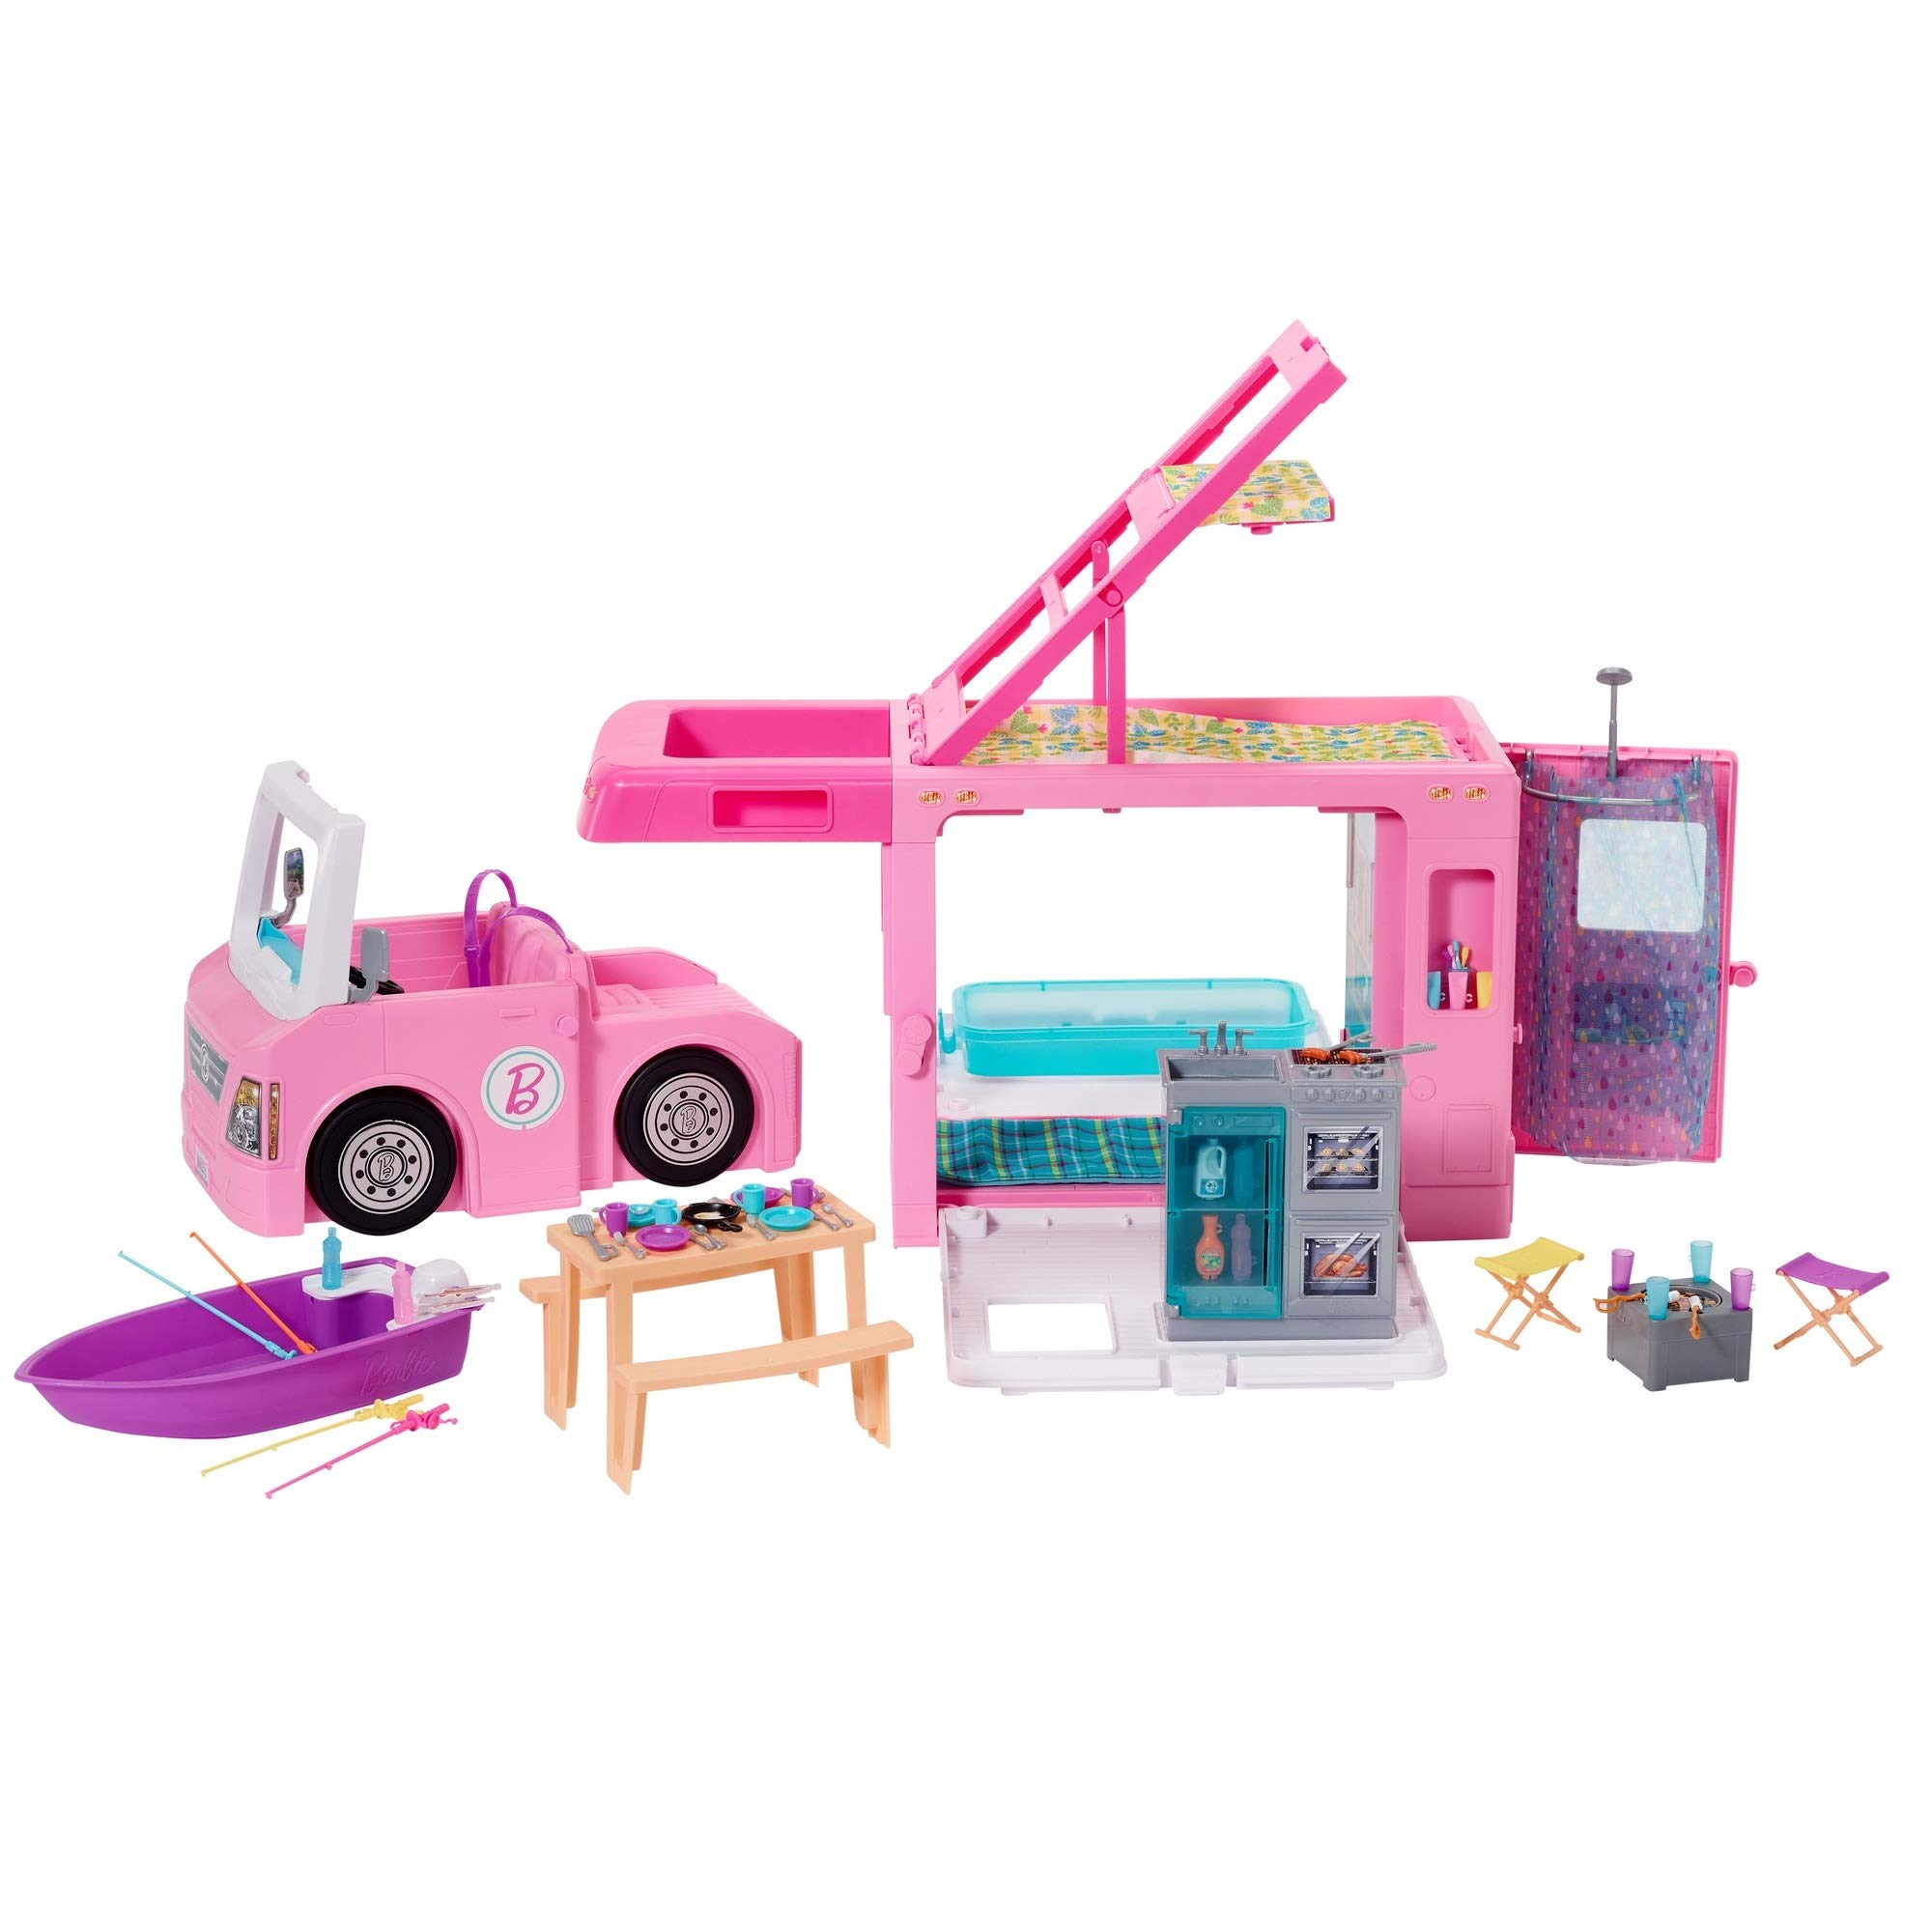 Barbie 3-in-1 DreamCamper Vehicle, approx. 3-ft, Transforming Camper with Pool, Truck, Boat and 50 Accessories, Makes a Great Gift for 3 to 7 Year Olds  Super Joy Convertible Car for Dolls , Glittering Magenta Convertible Doll Vehicle with working Seat Belts  Chelsea Travel Doll, Blonde, with Puppy, Carrier & Accessories, for 3 to 7 Year Olds  Barbie Pink Passport 2 Pack Camping Adventure Dolls Gift Set, Brown  Barbie Dreamplane Transforming Playset with Reclining Seats and Working Overhead Compartments, Plus 15+ Pieces Including a Puppy and a Snack Cart, for Kids 3 Years Old and Up